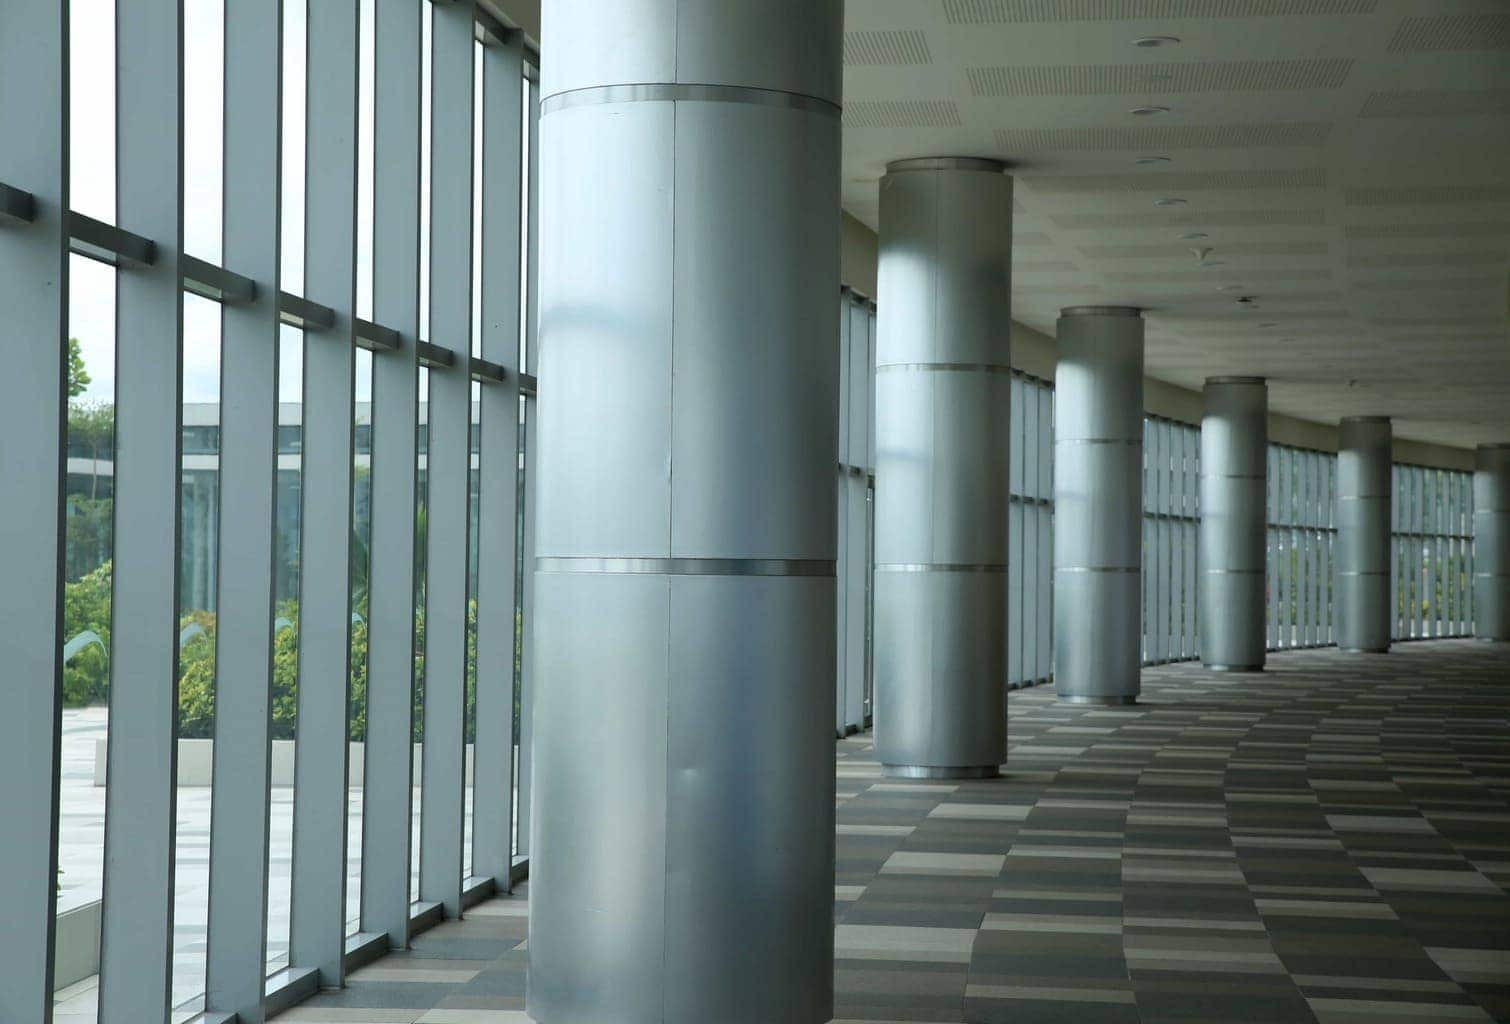 I took this shot in the SM Mall in Cebu of the roof support pillars. By Dpi Photography.